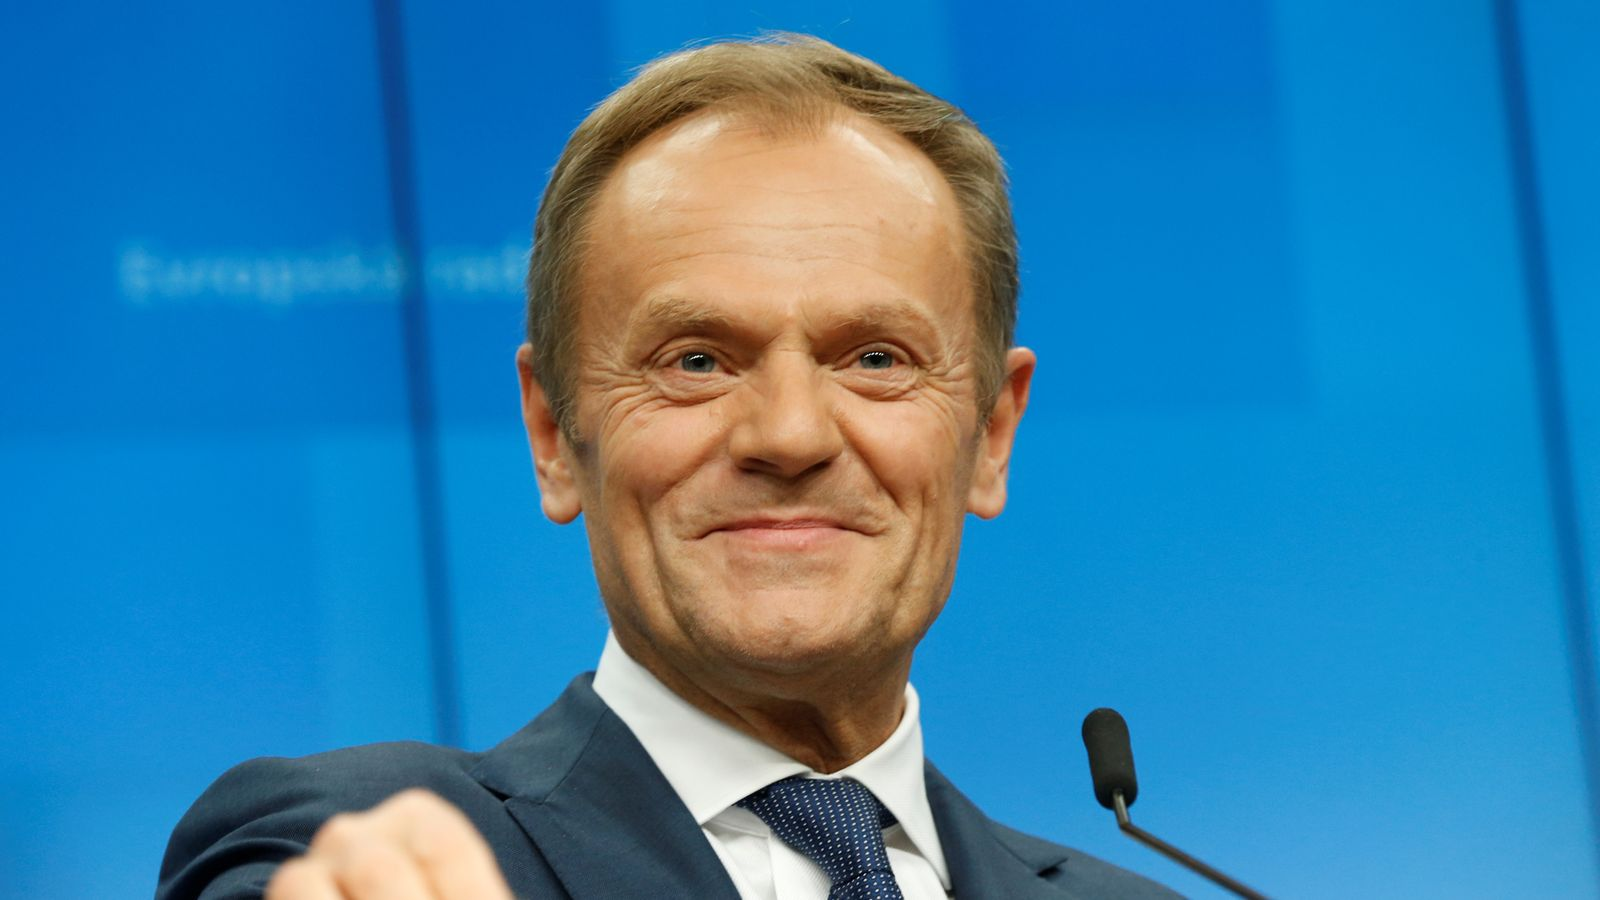 EU president Tusk urges voters to back Change UK